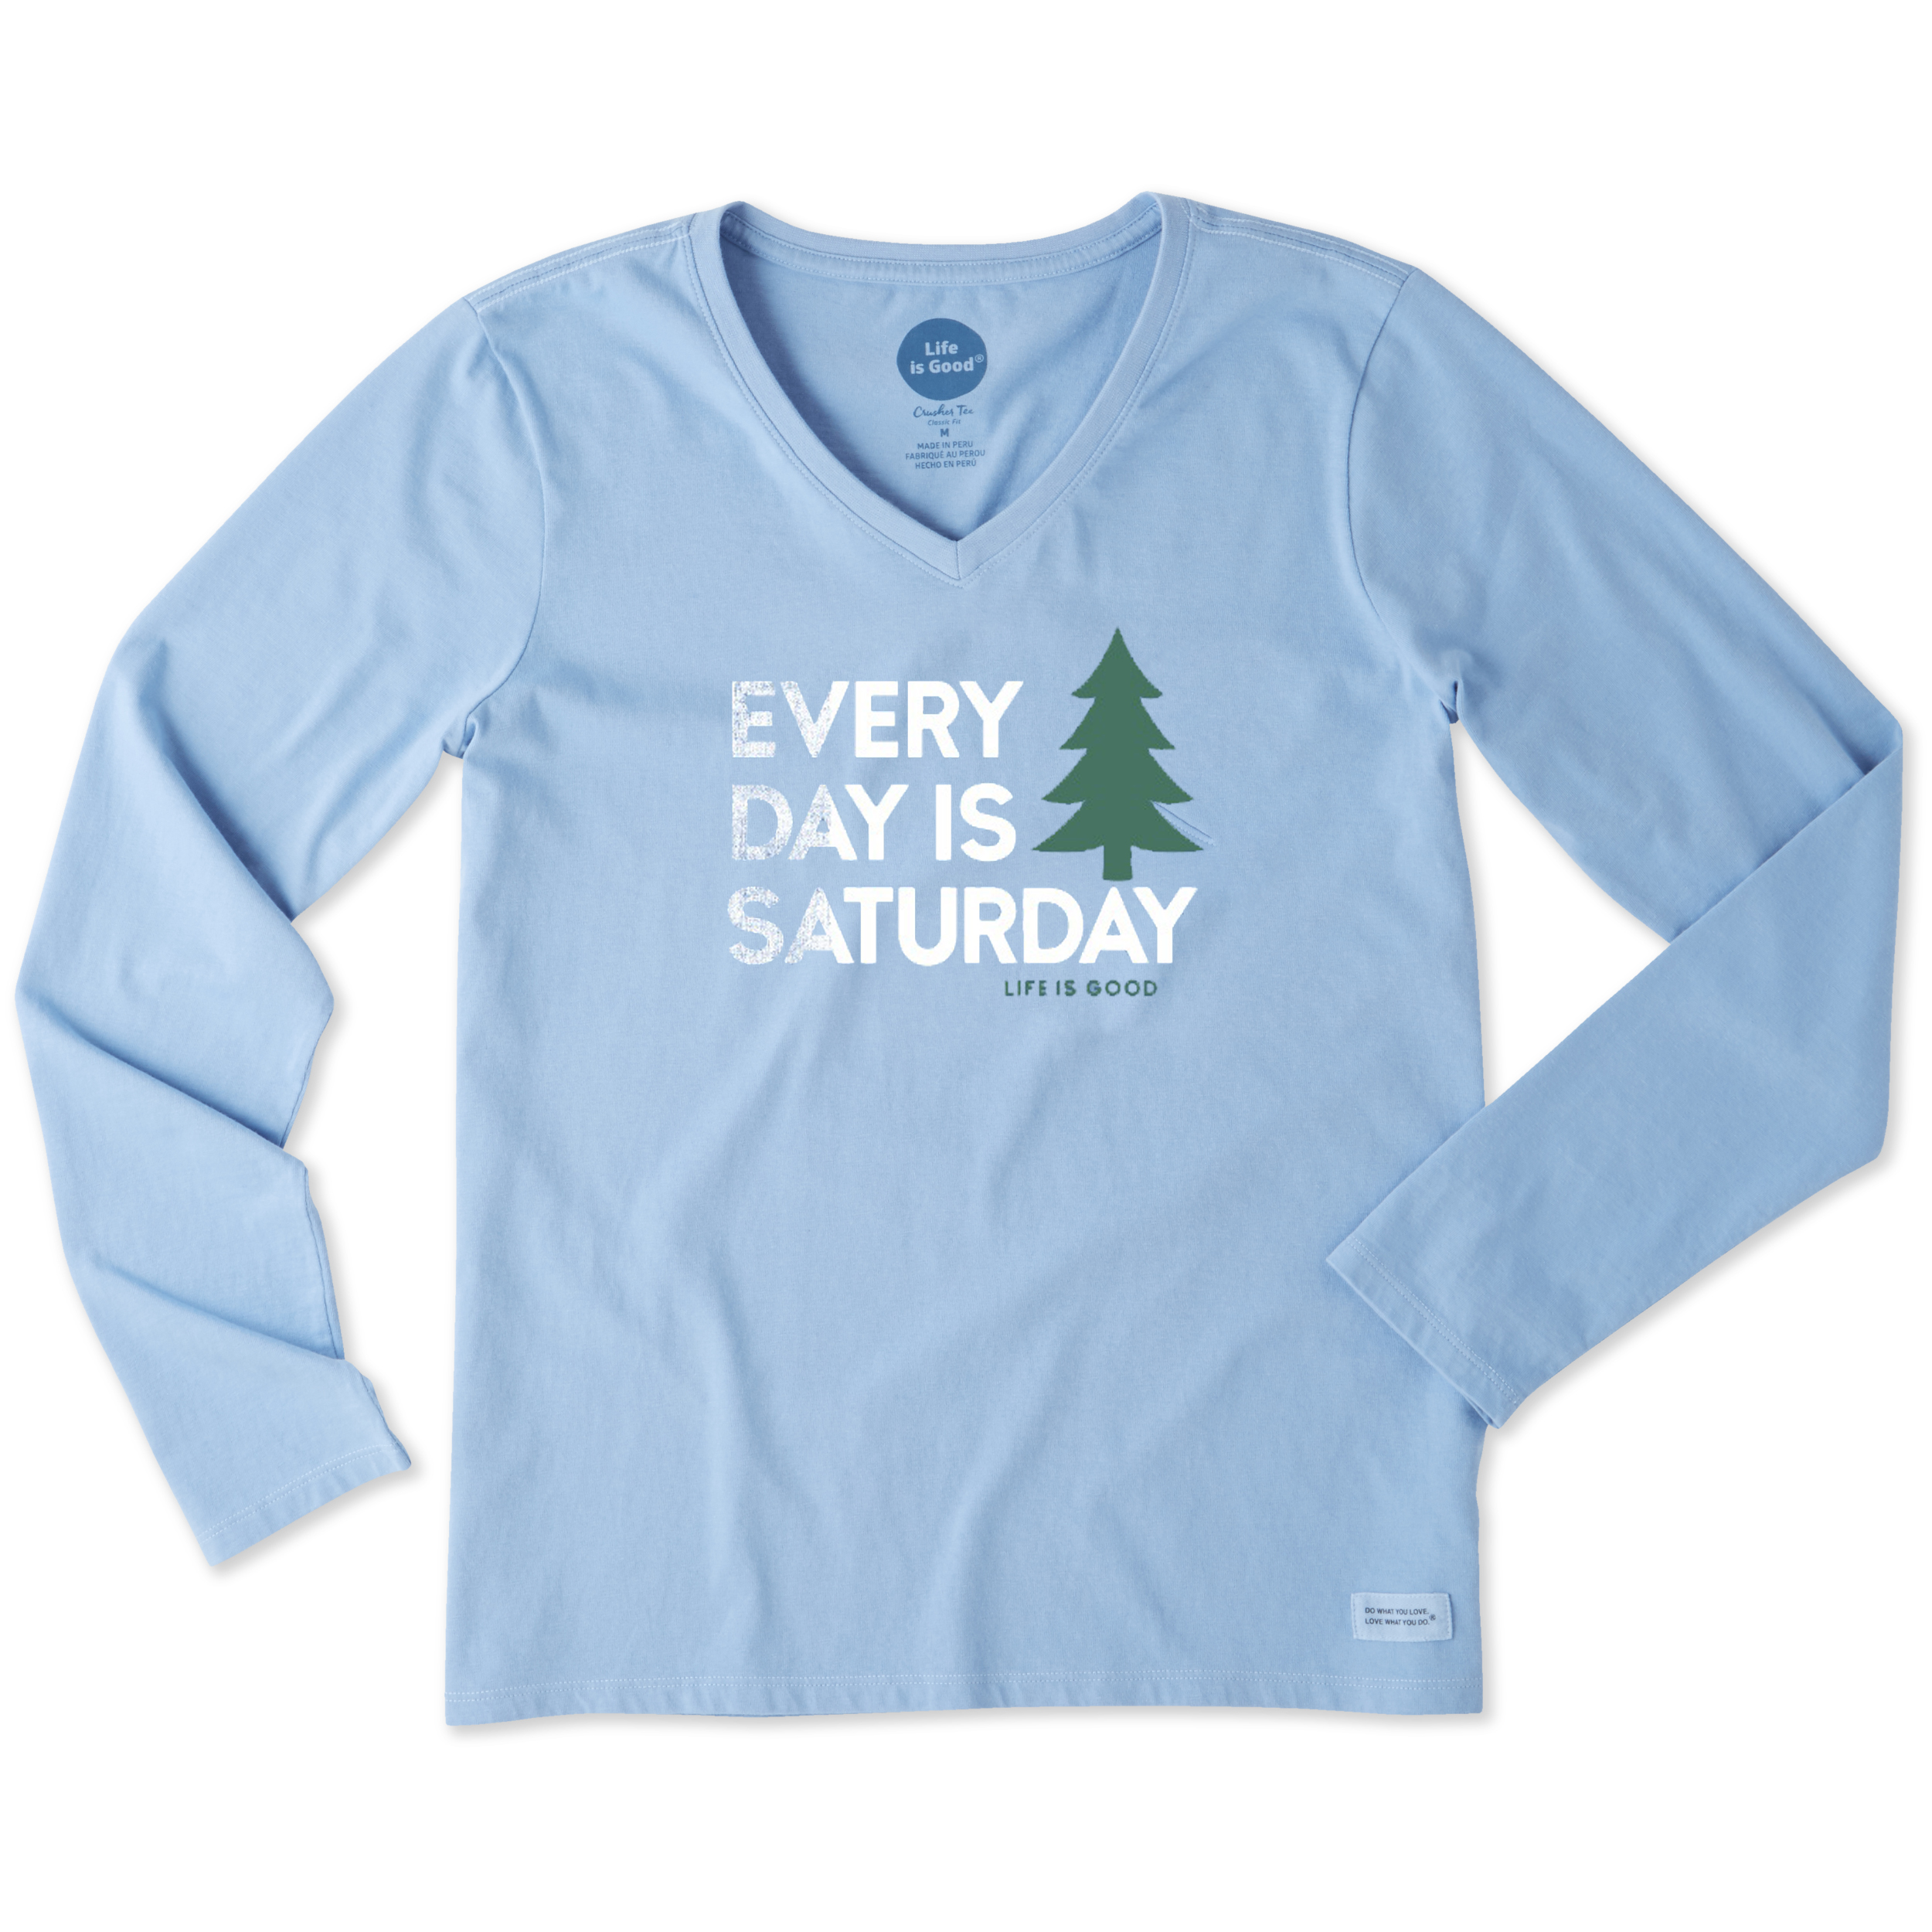 dab2f4495d9c72 Details about Life is Good. Womens Long Sleeve Crusher Vee: Everyday is  Saturday, Powder Blue